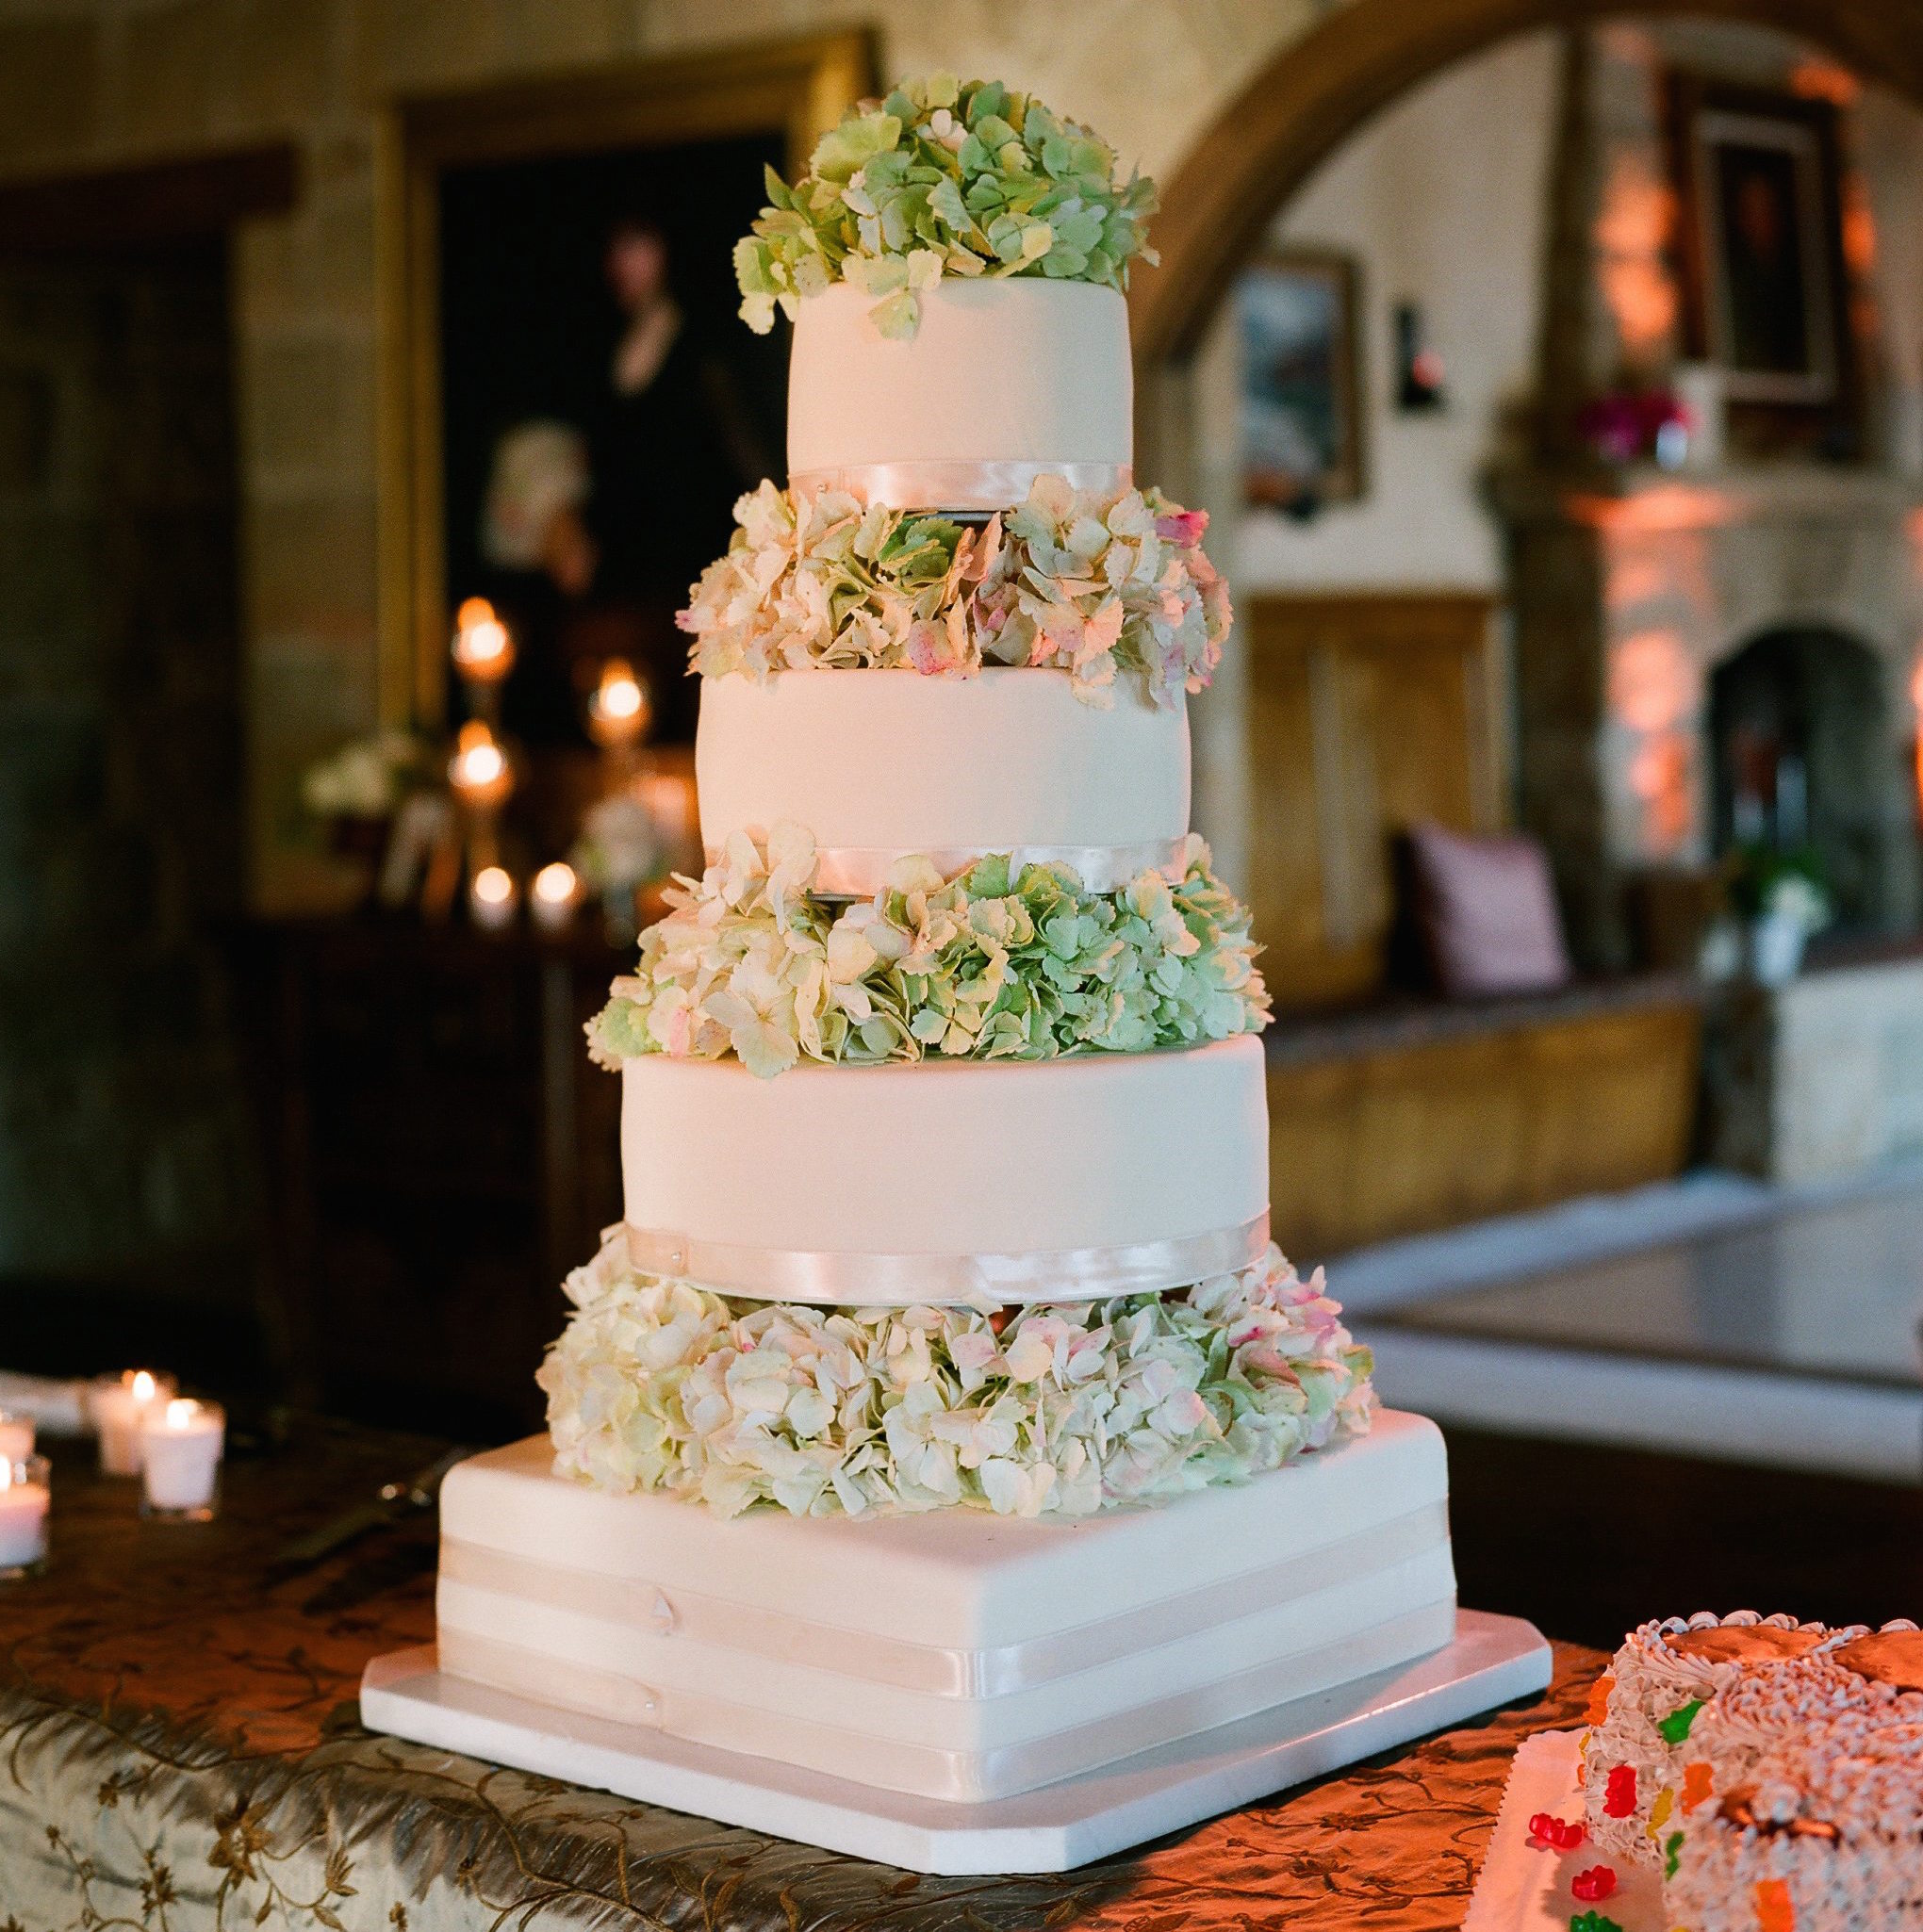 Green and pink hydrangea flowers on wedding cake